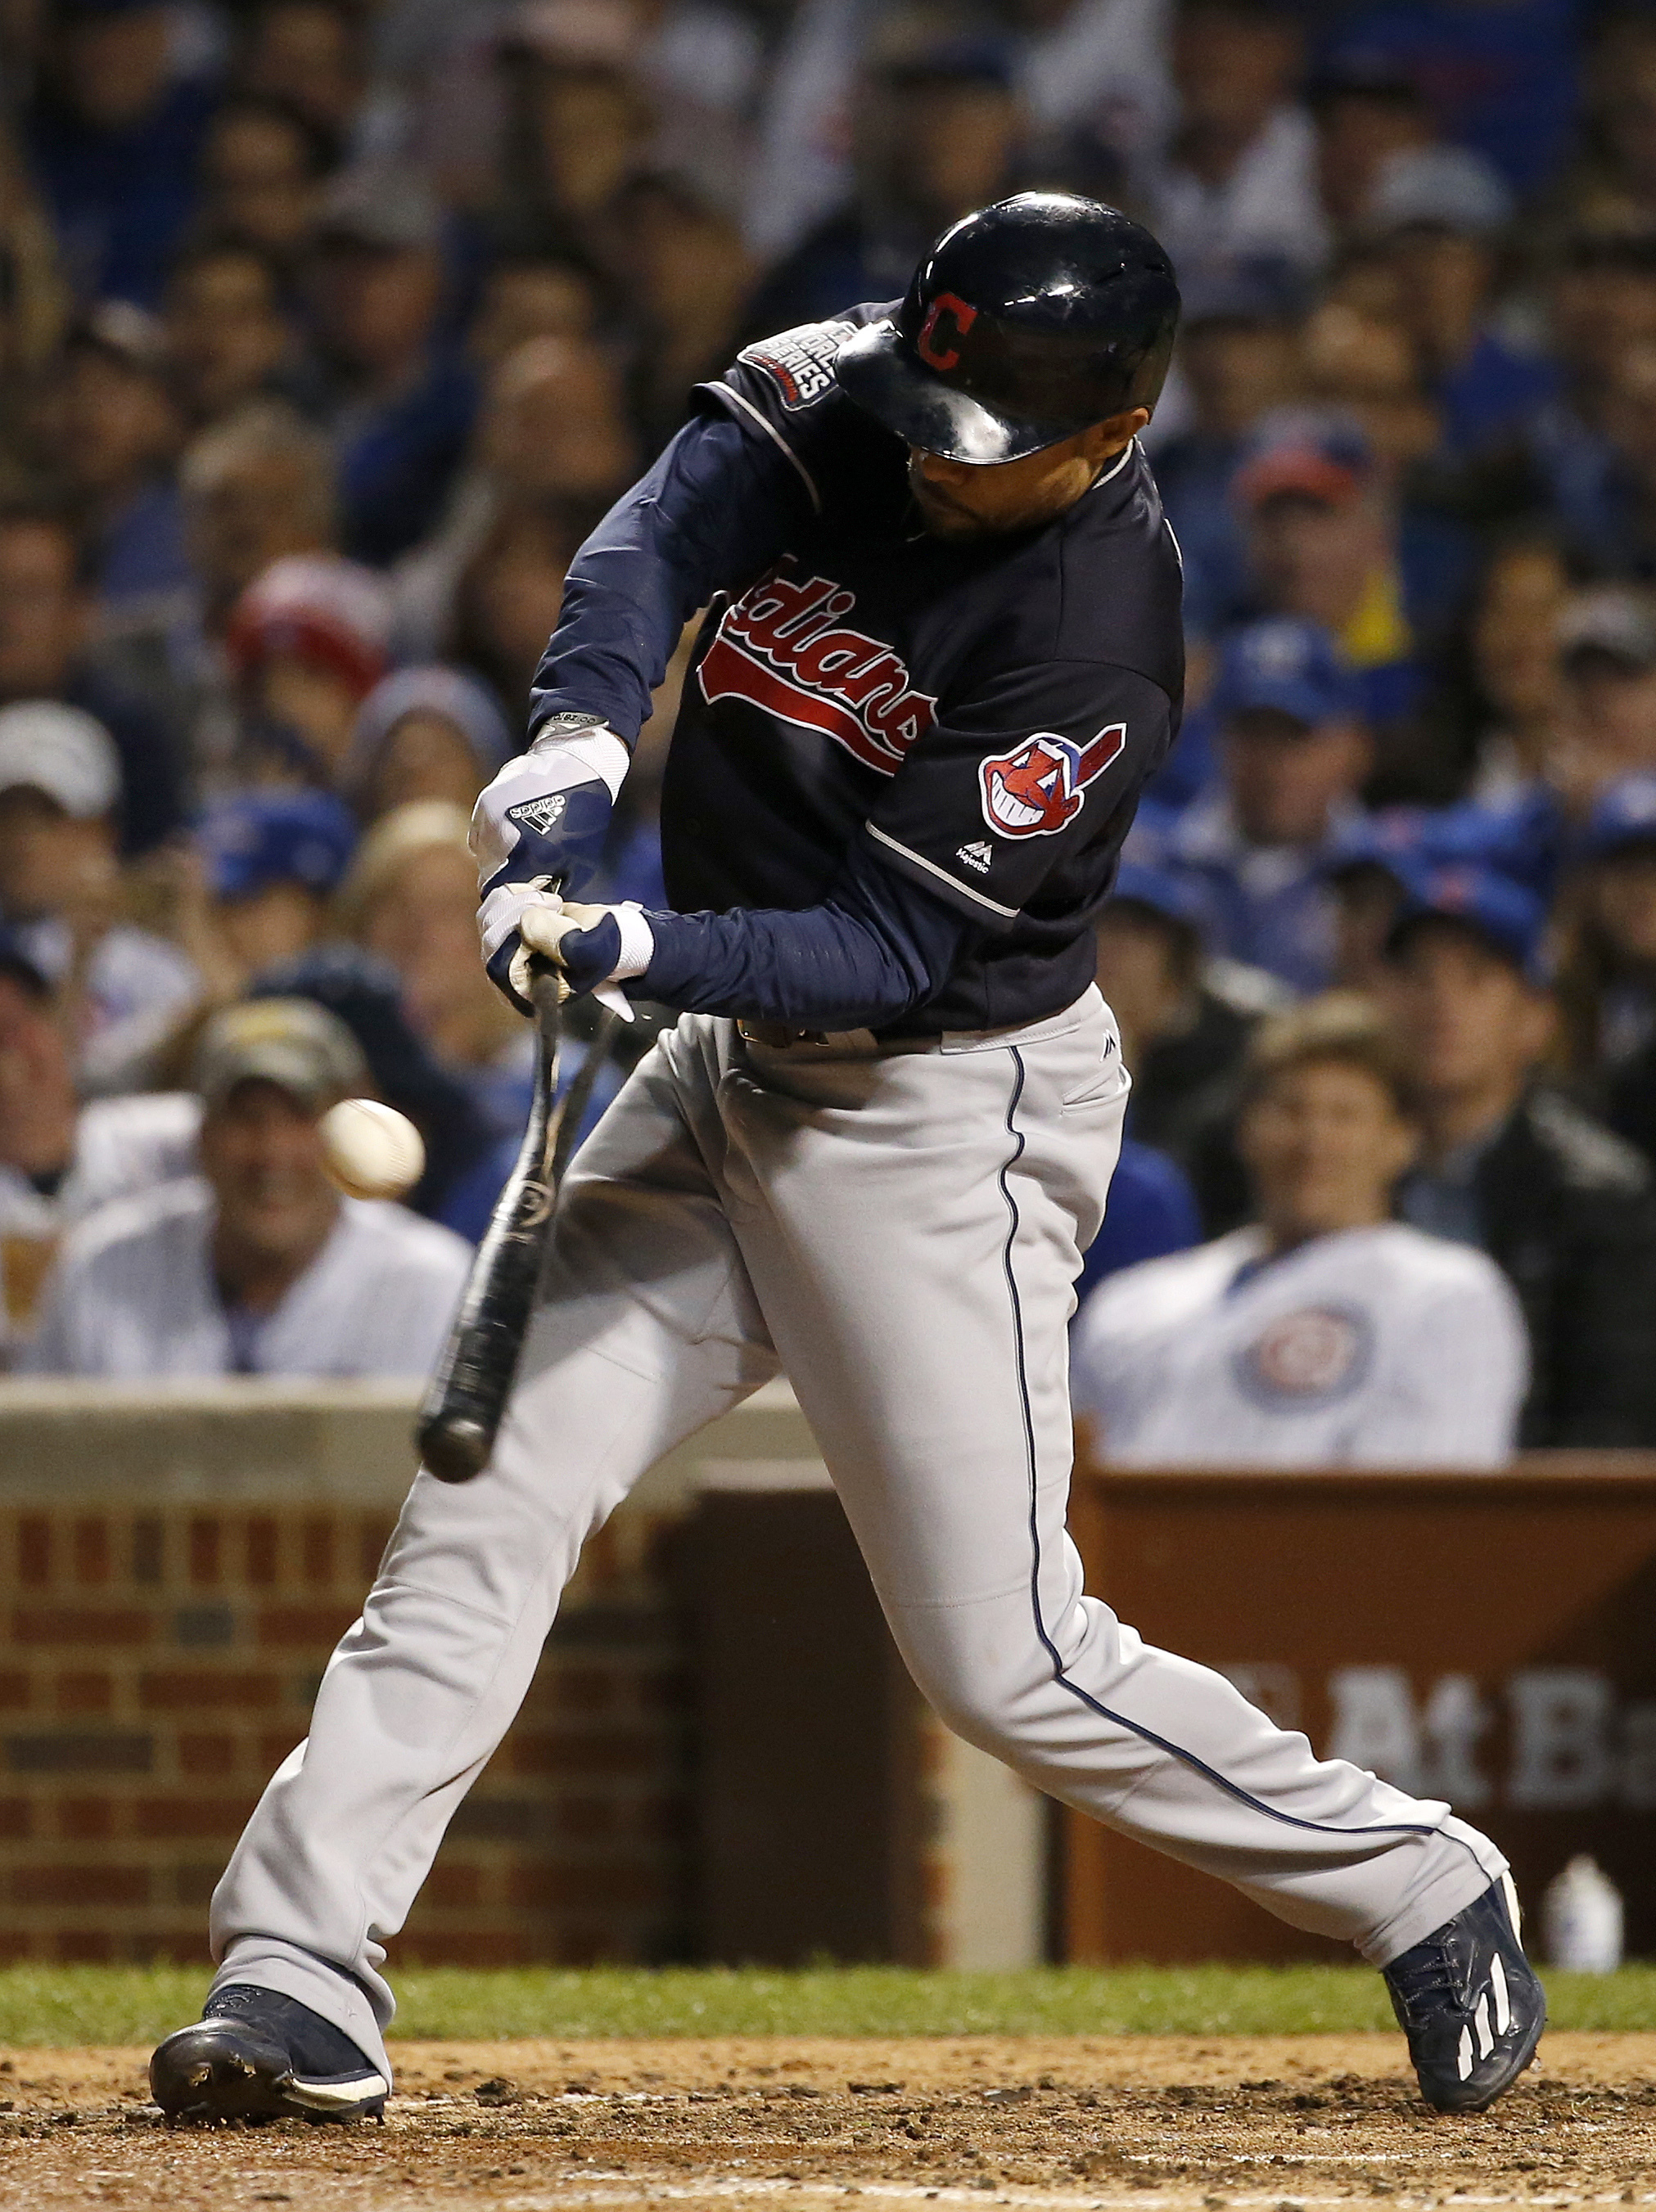 Cleveland Indians' Coco Crisp hits a RBI single during the seventh inning of Game 3 of the Major League Baseball World Series against the Chicago Cubs, Friday, Oct. 28, 2016, in Chicago. (AP Photo/Nam Y. Huh)